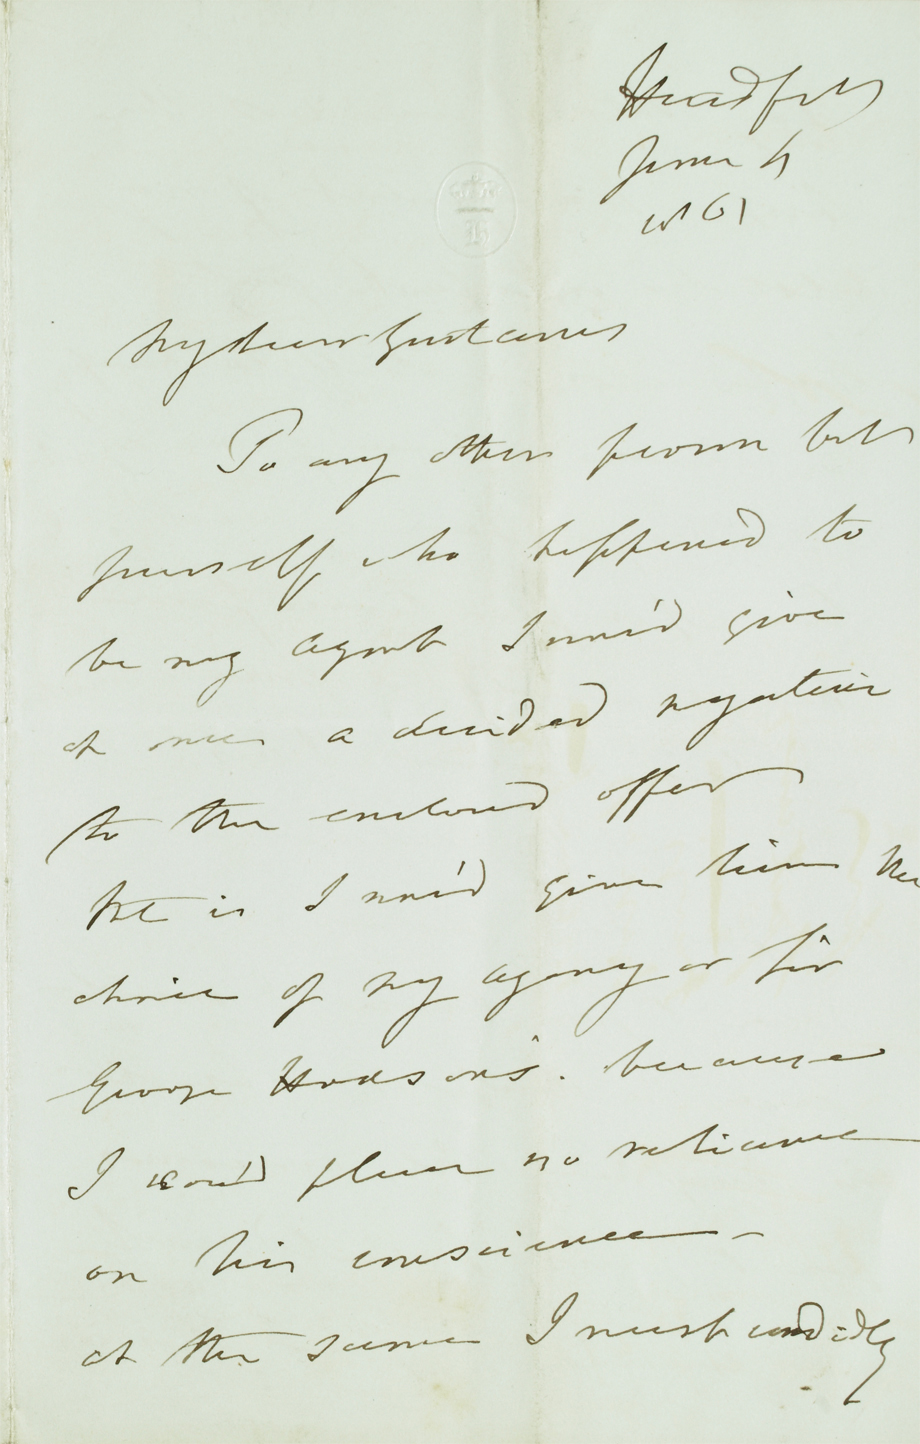 Letter from Lord Headfort to his son, Gustavus Tuite Dalton re Estate Matters, 4 January 1861. NLI Ref. Ms 49,011/1